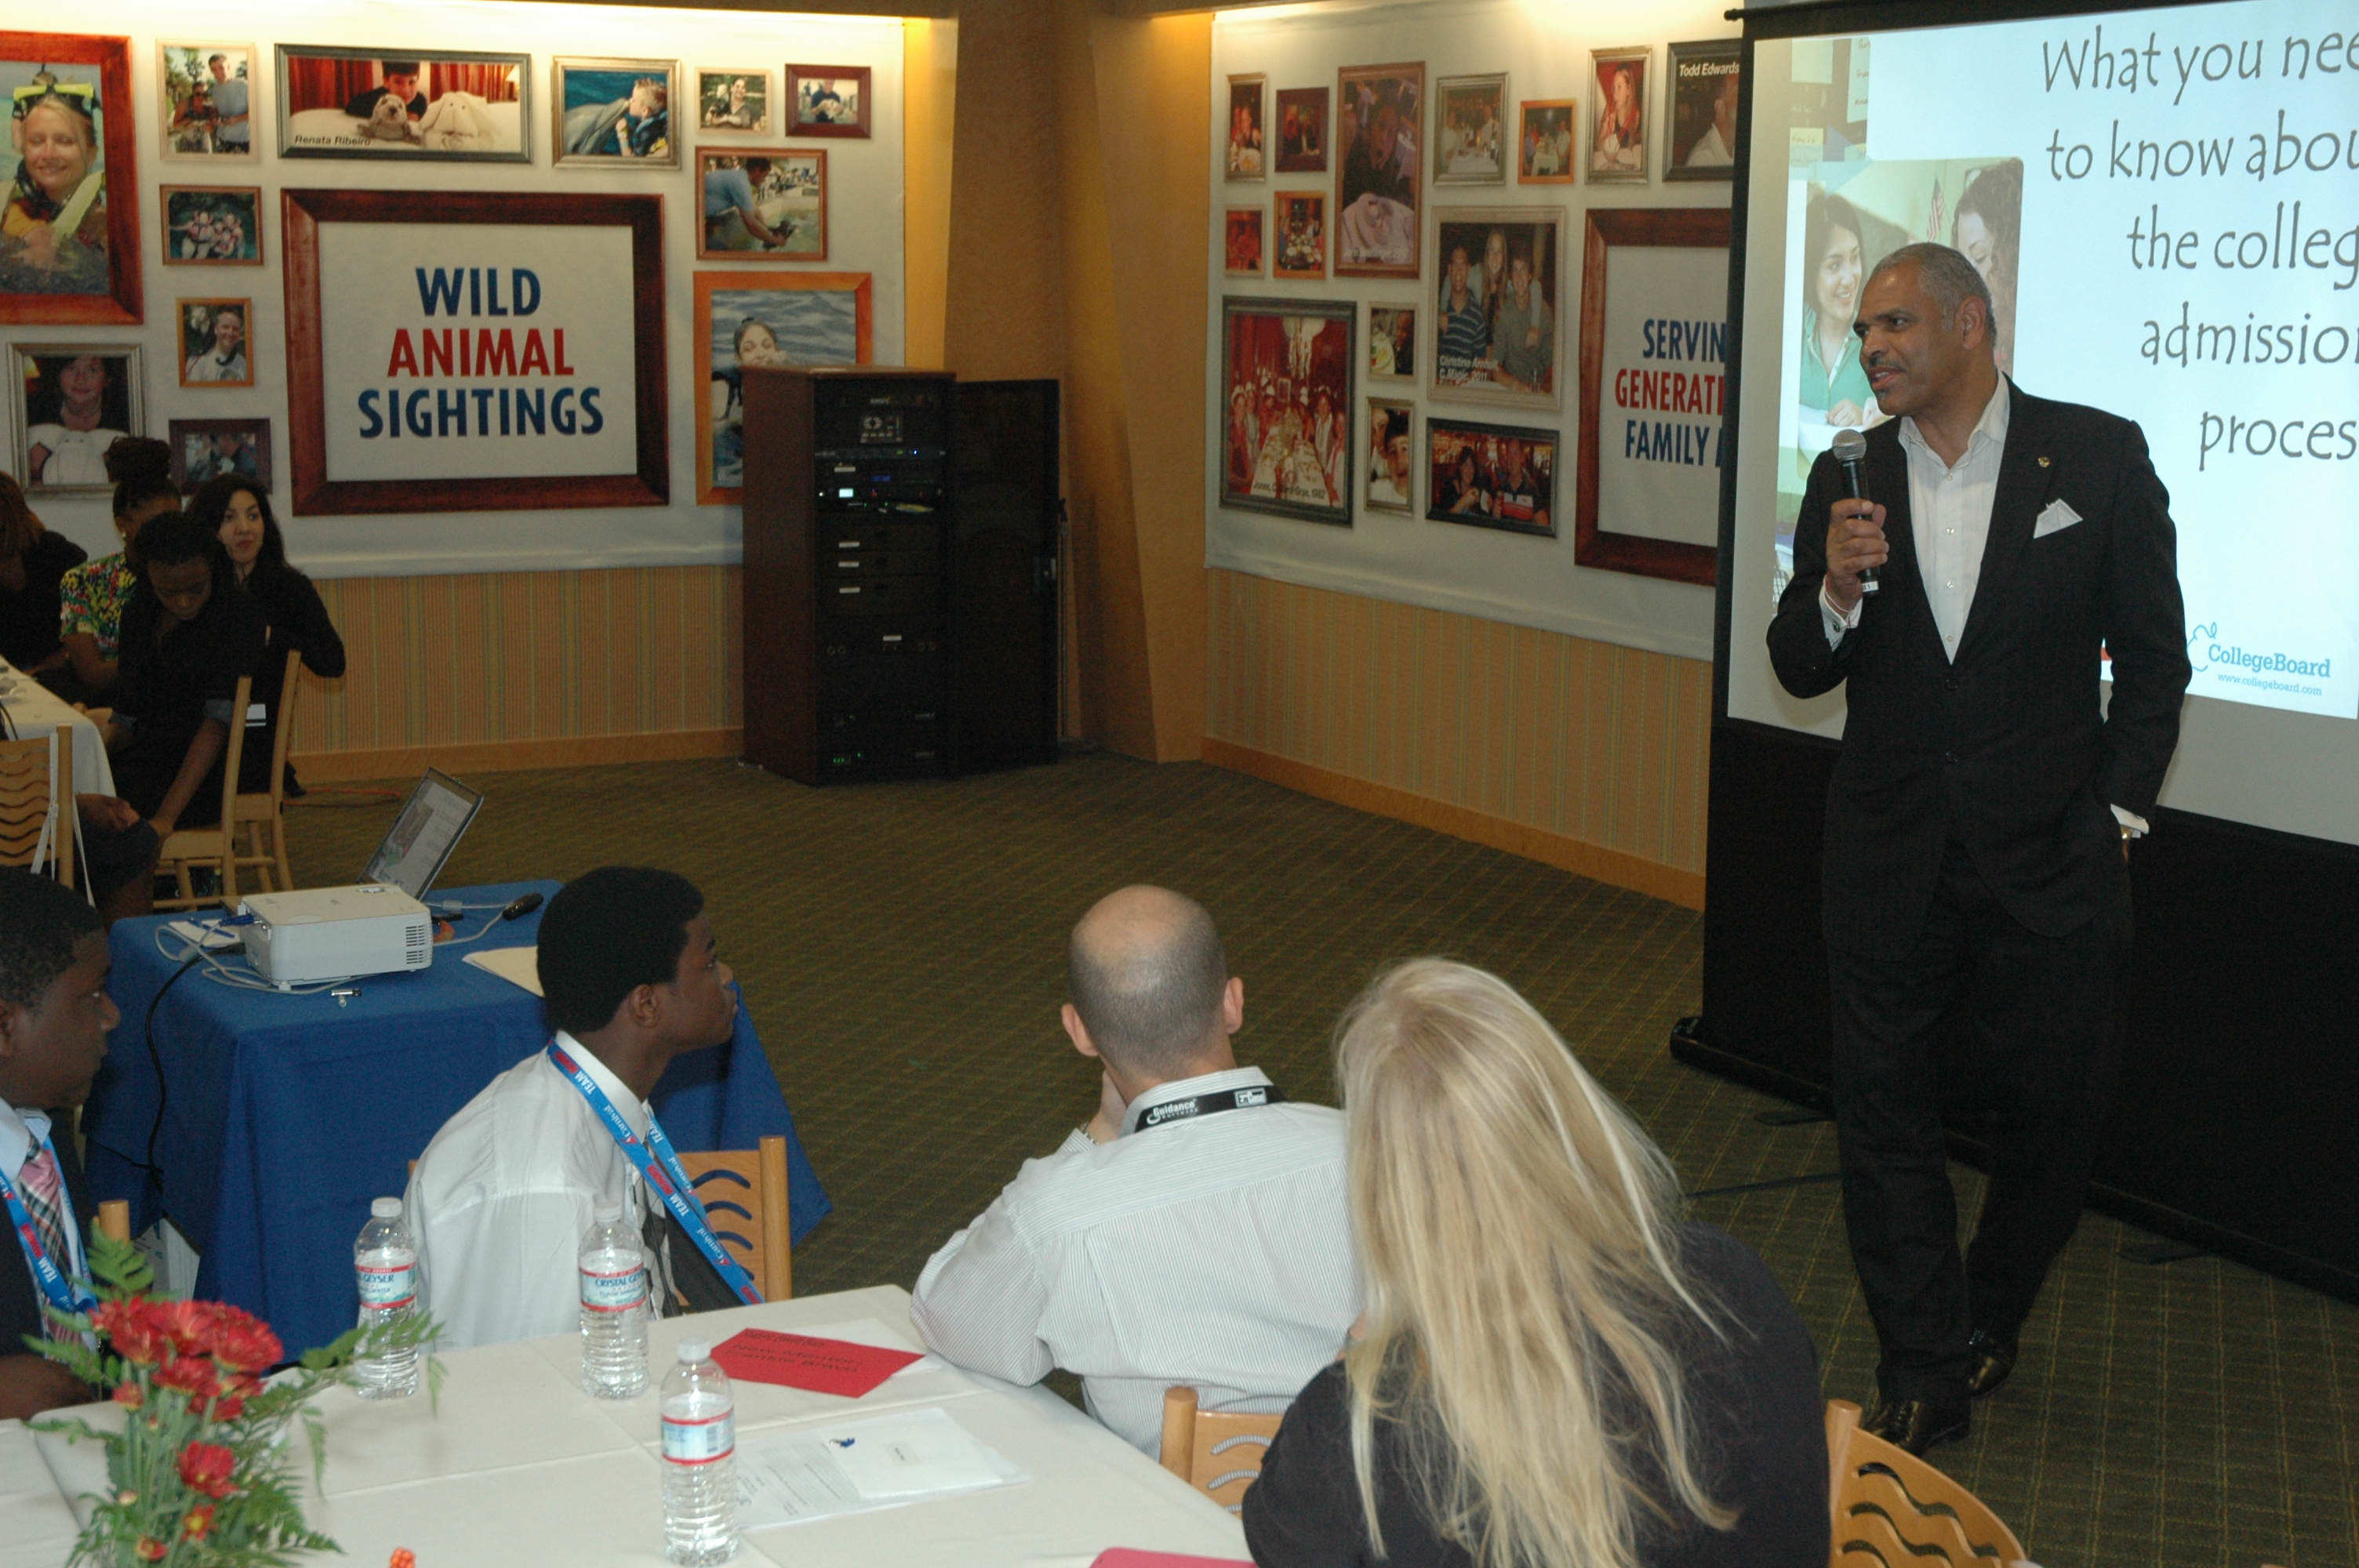 Carnival Corporation & plc President and CEO Addresses Students  from Carnival's Scholarship & Mentoring Program